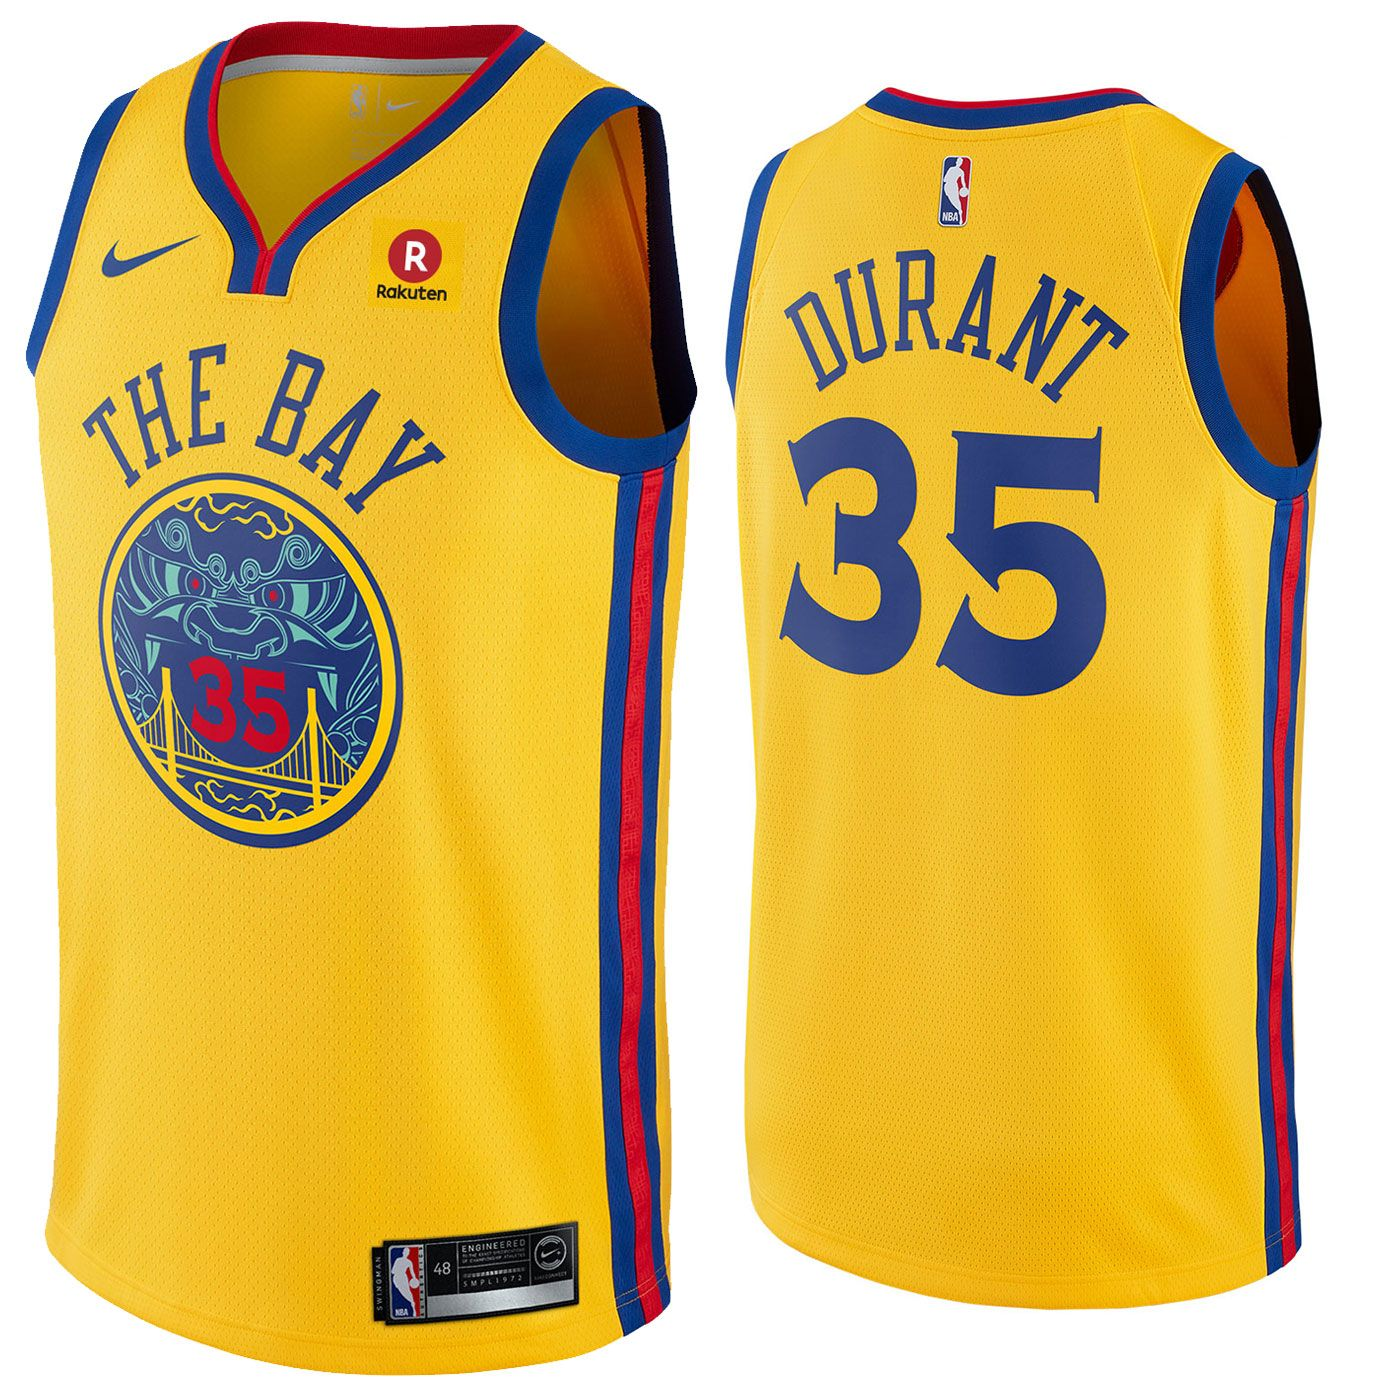 e1d1367543c Golden State Warriors Nike Dri-FIT Men's Chinese Heritage Kevin Durant #35  Swingman City Edition Jersey - Gold